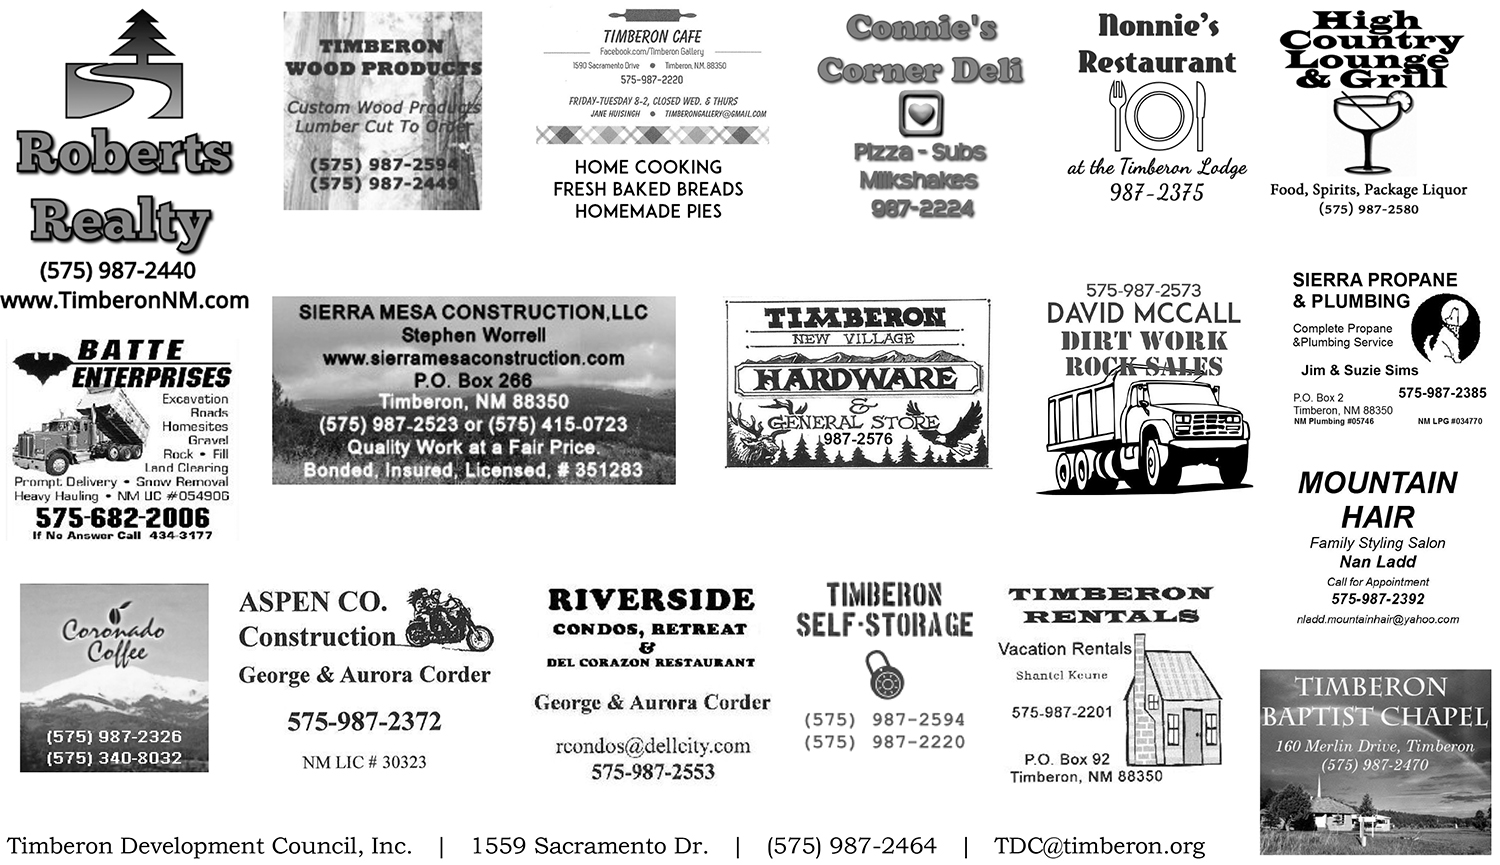 Timberon Business Directory \u2013 Timberon Development Council, Inc.